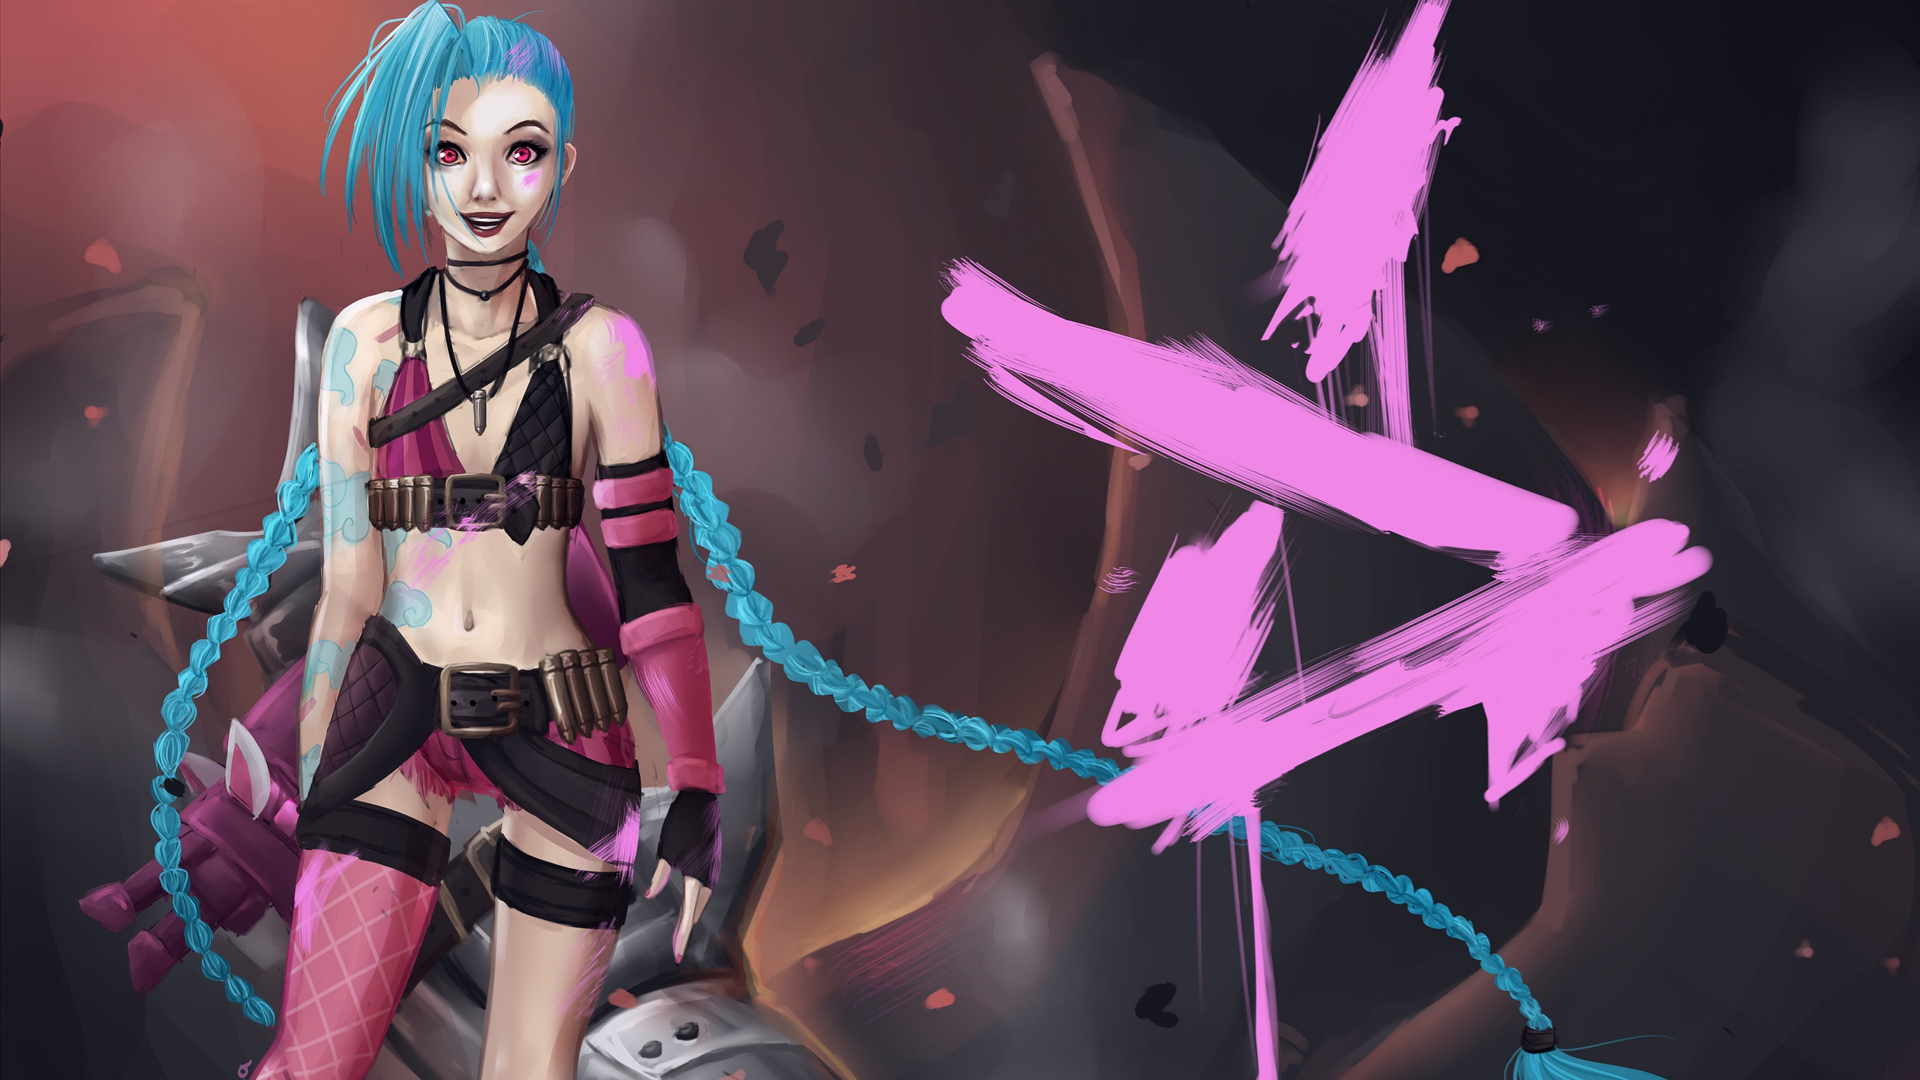 jinx lol wallpaper hd